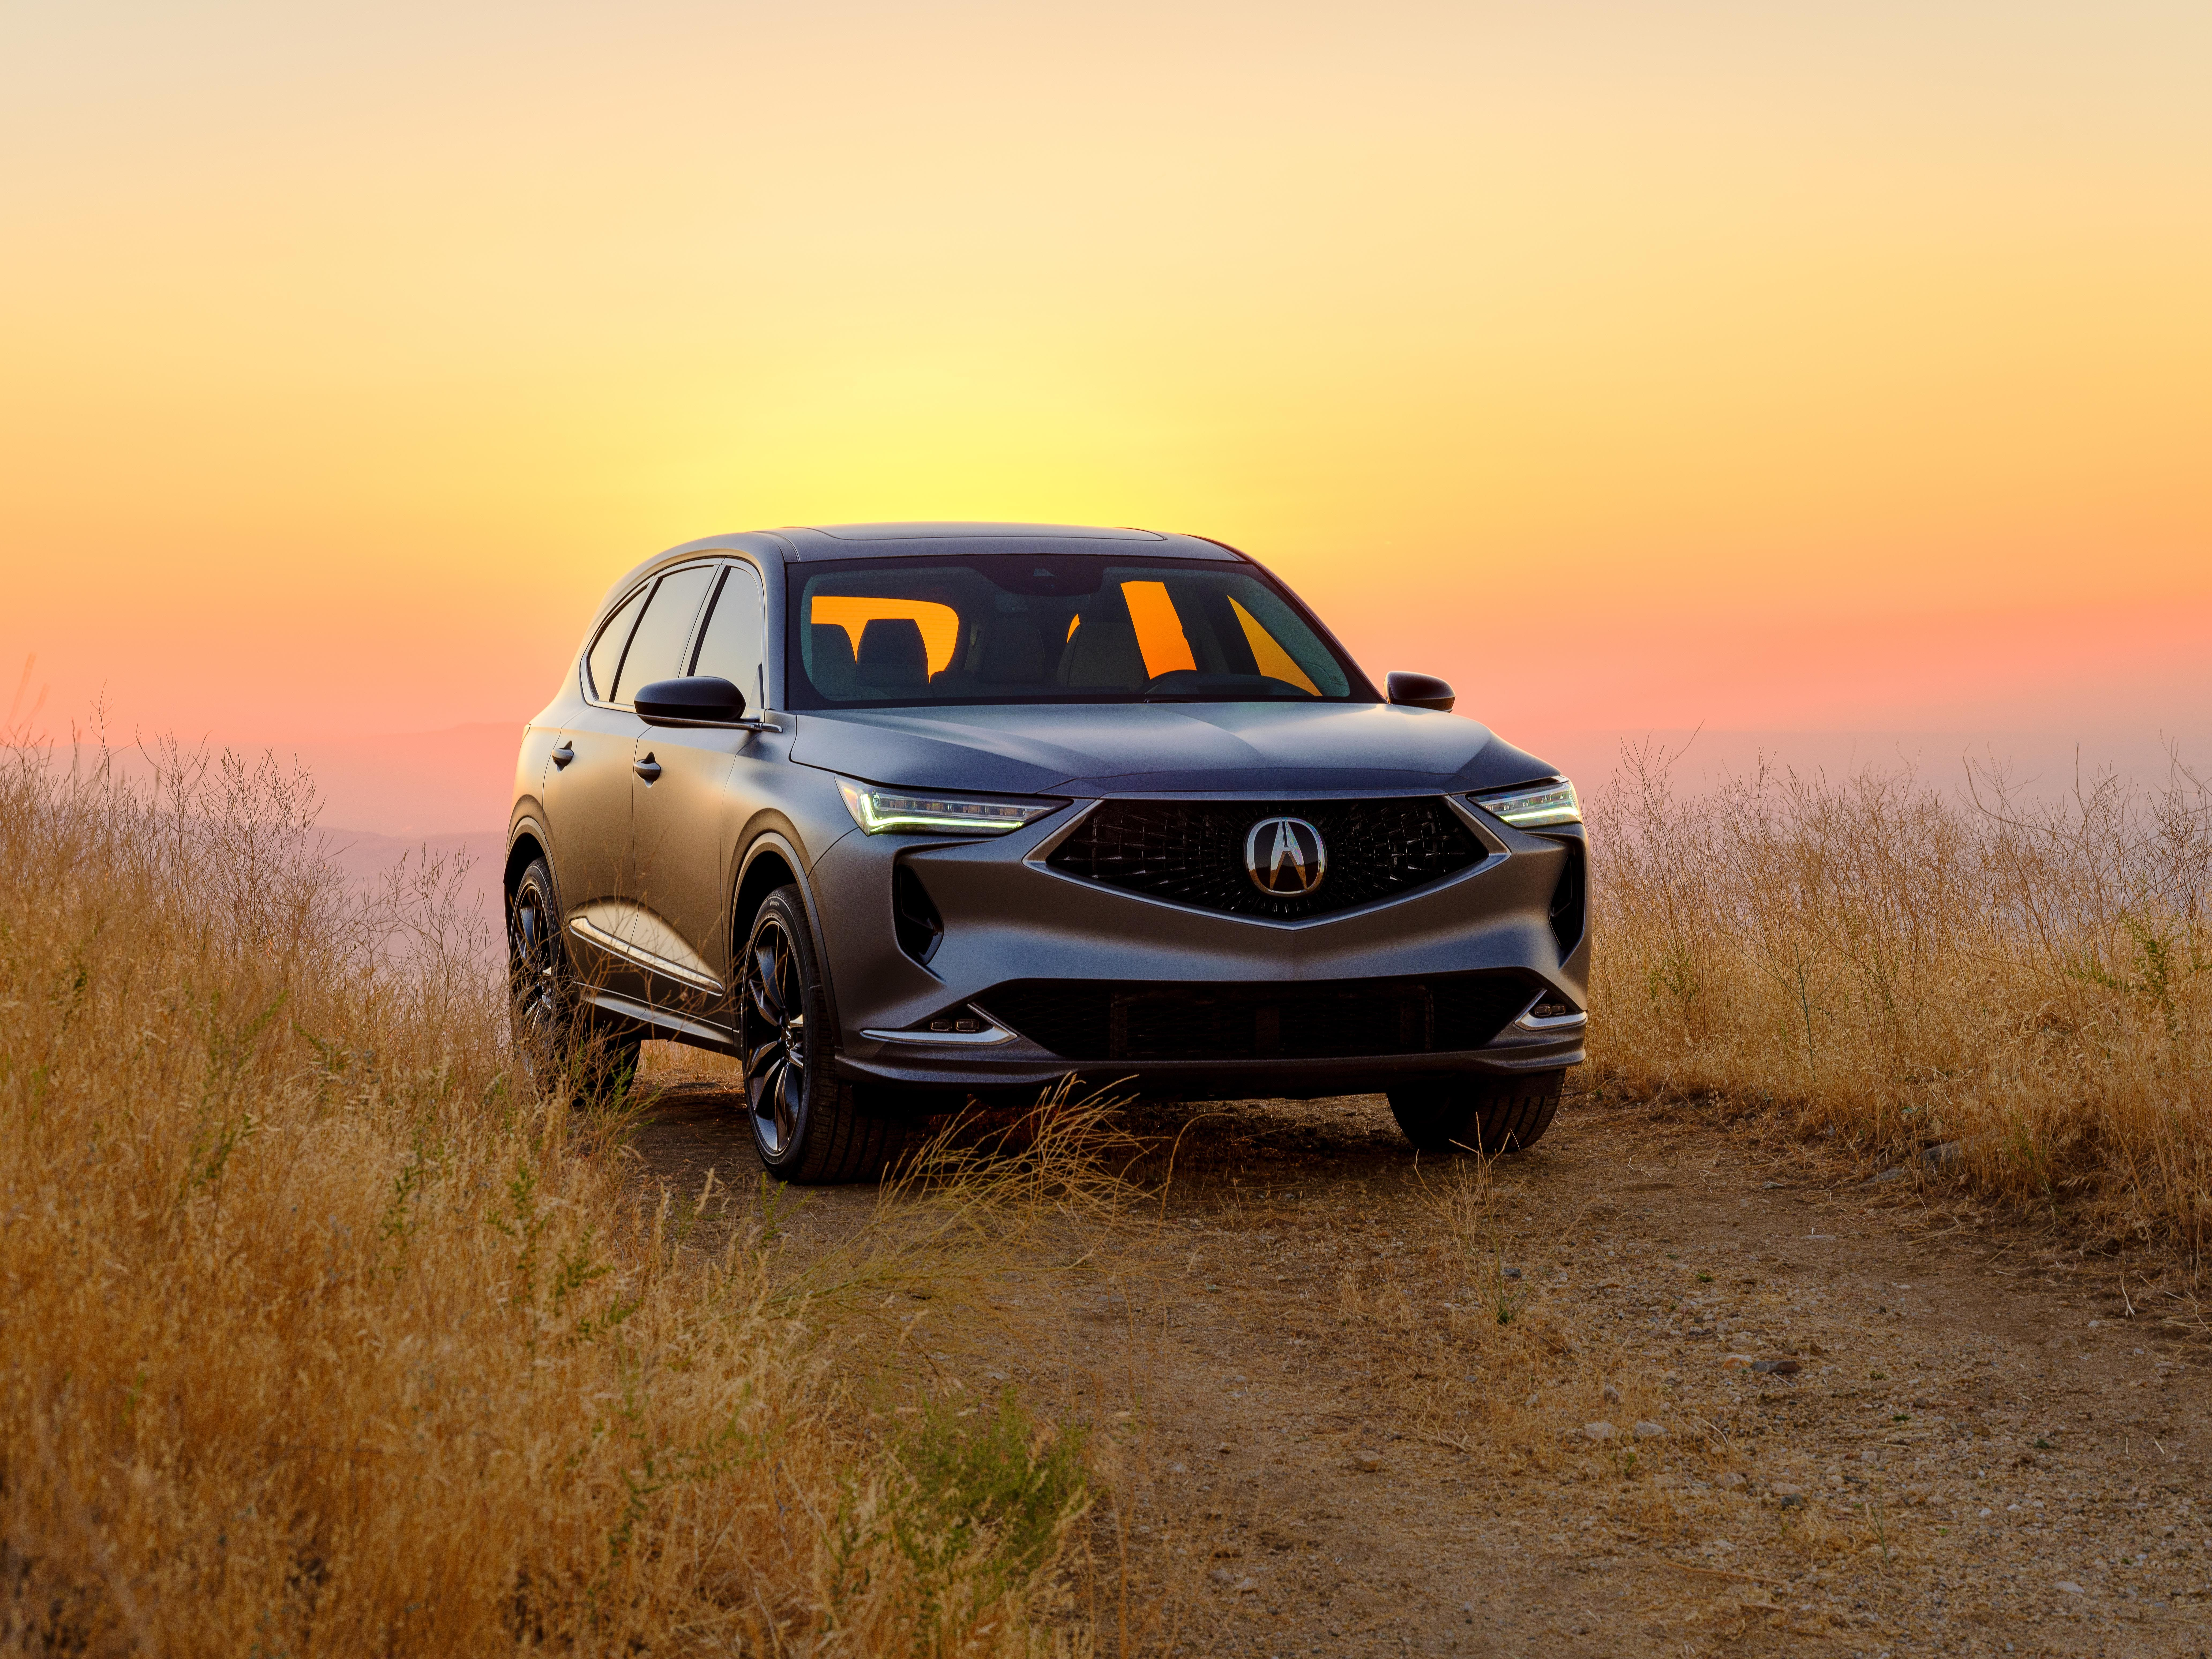 2022 Acura Mdx What We Know So Far